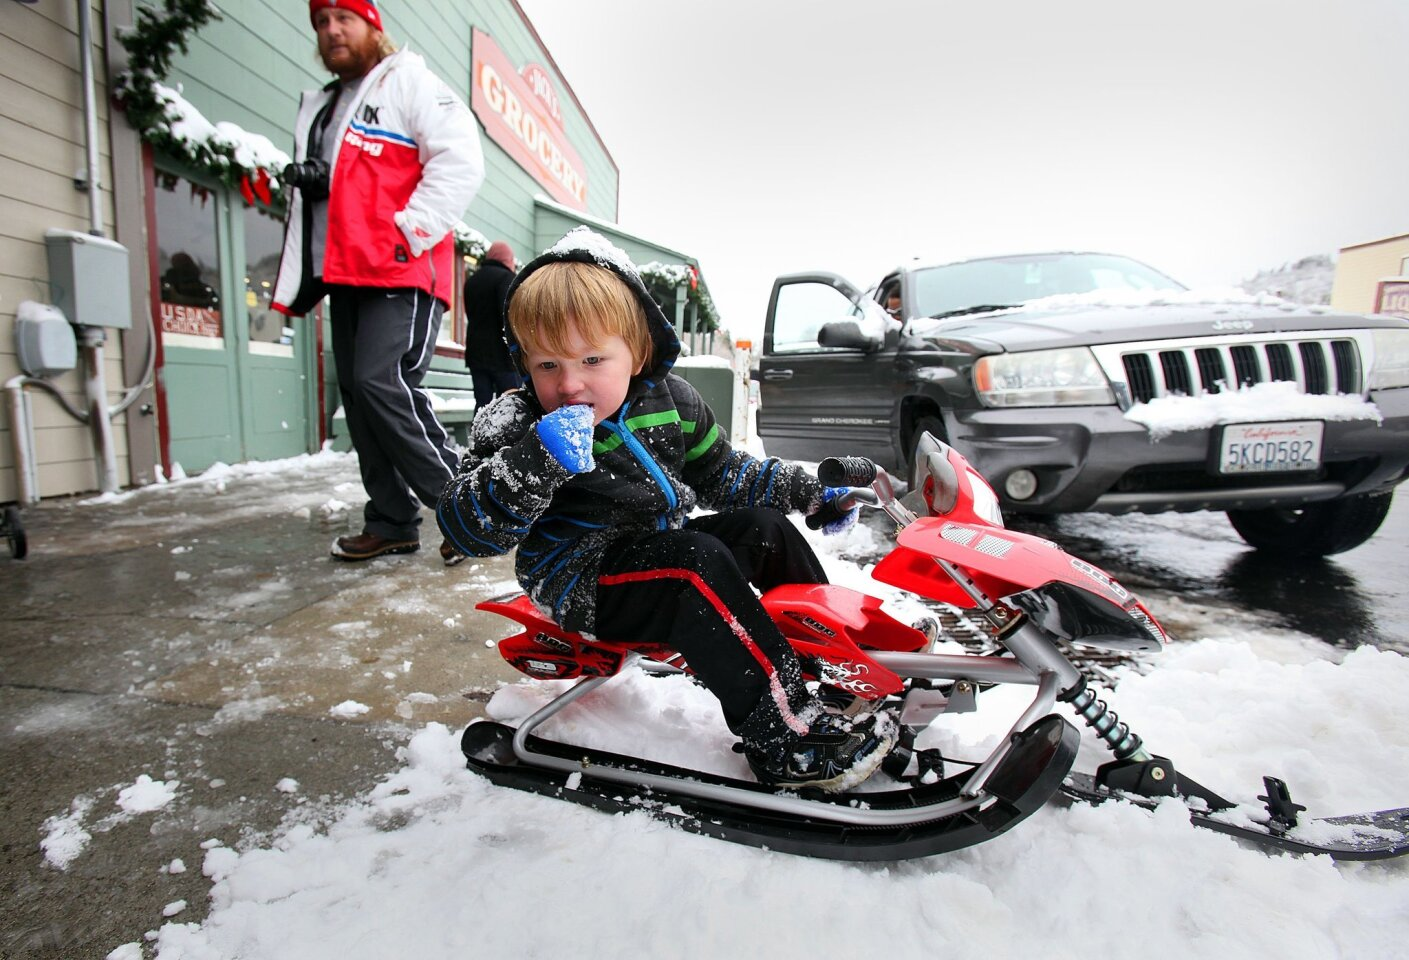 Grady Ebert, 5, traveled with his father Chris Ebert, rear, and the rest of his family from El Cajon to Julian for an old-fashioned snow day in the mountains.  Here they stopped on Main Street in Julian and Grady tried out the taste of fresh snow.